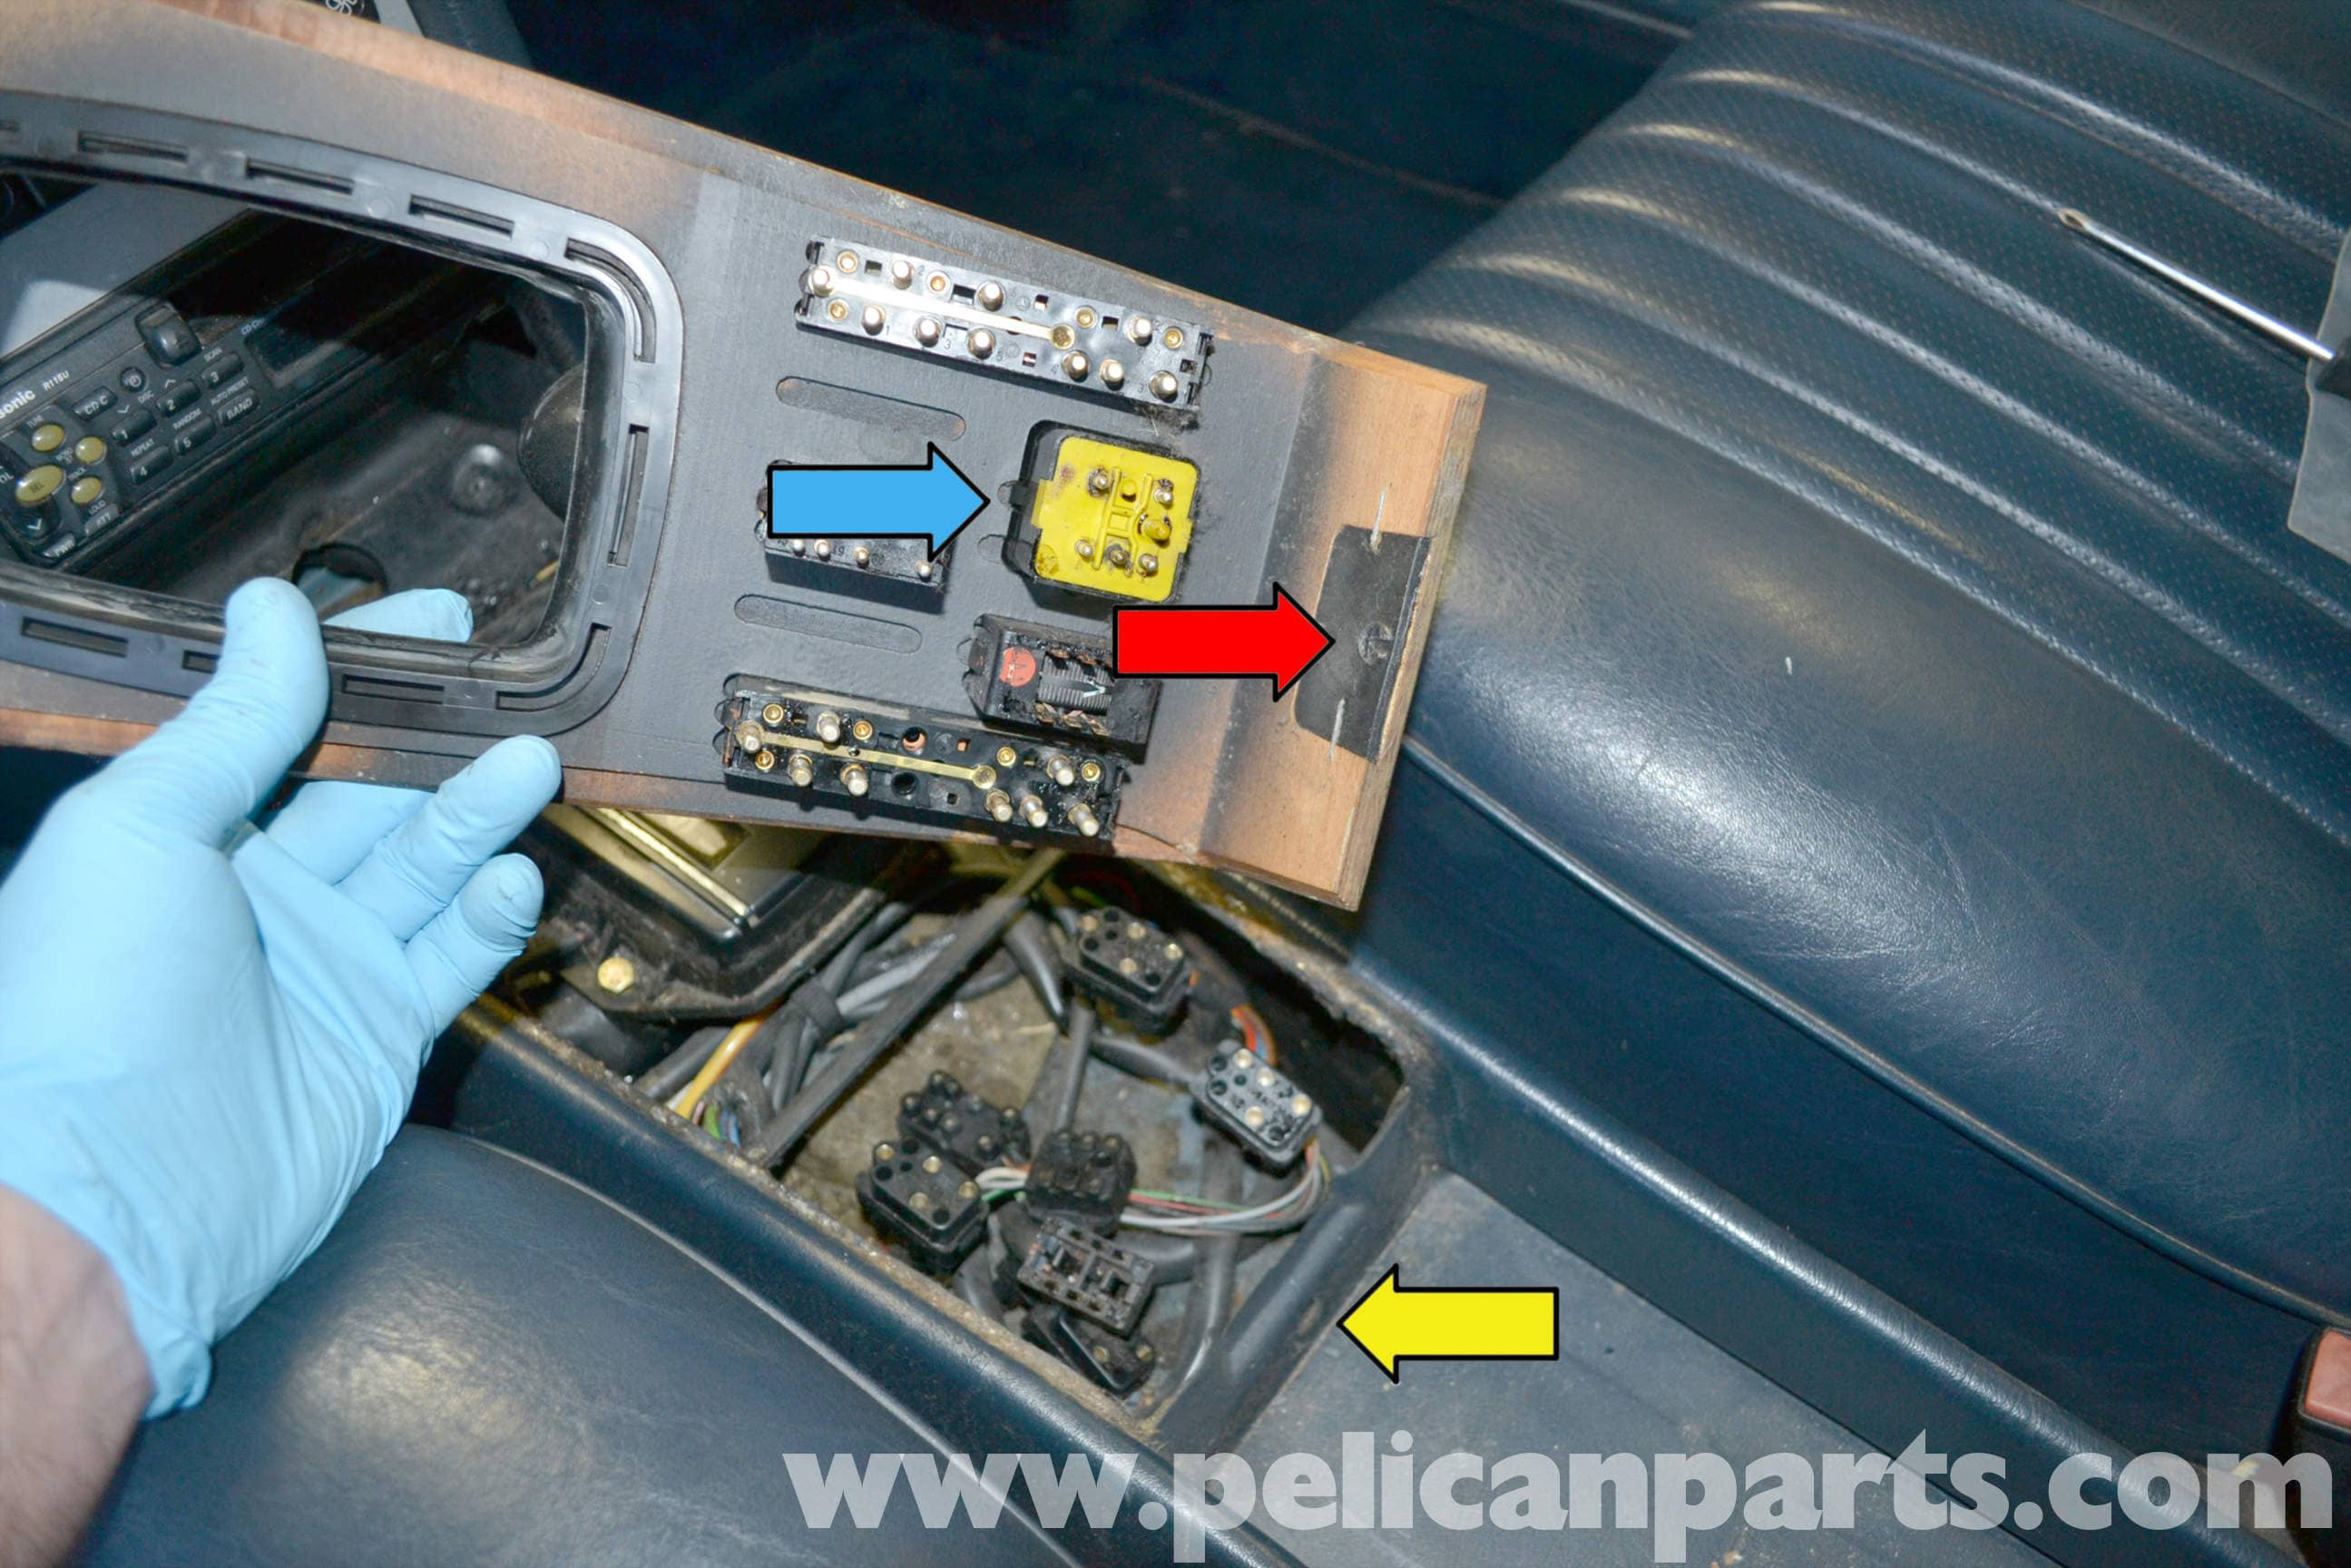 Mercedes Benz W123 Flasher Switch And Relay Replacement 1977 Panel Mounted Push On Hazard Large Image Extra